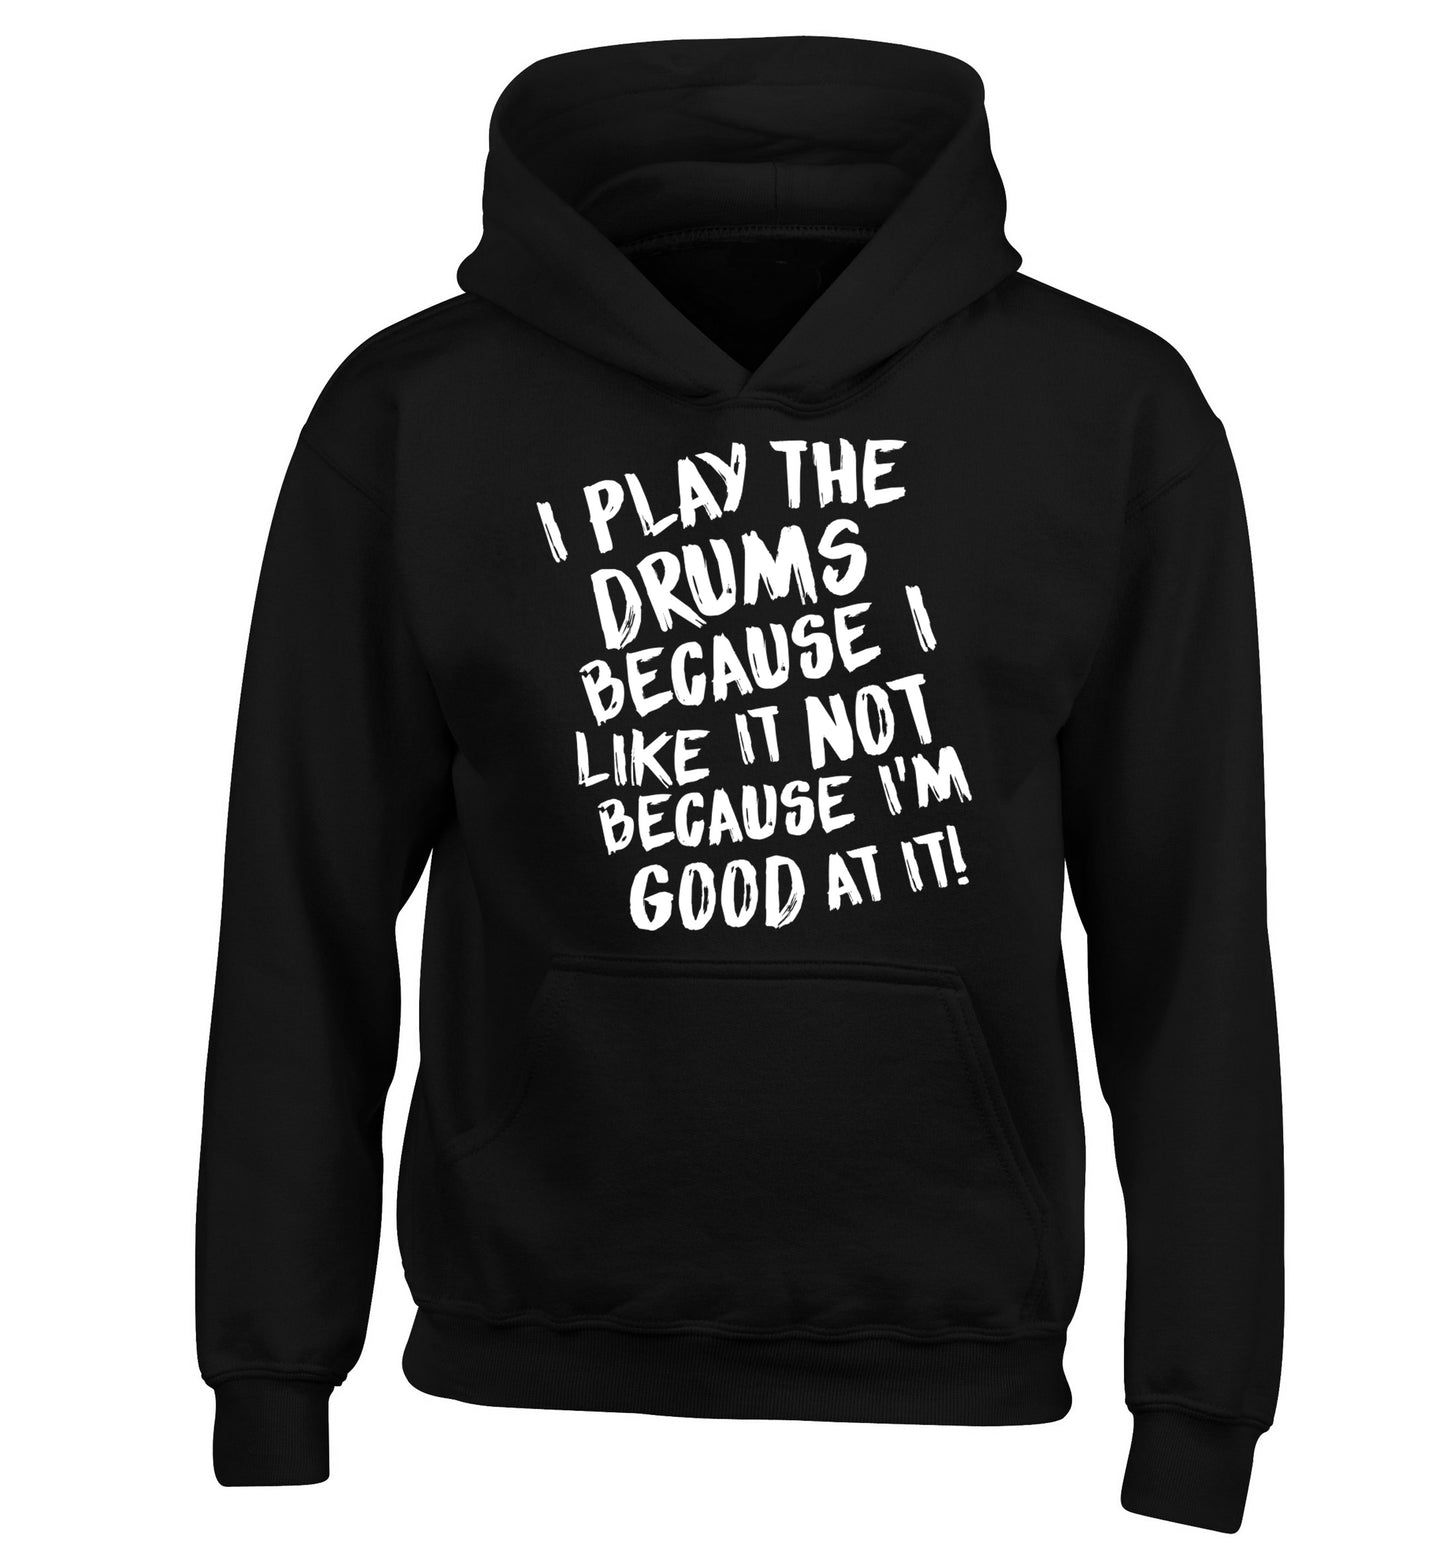 I play the drums because I like it not because I'm good at it children's black hoodie 12-14 Years